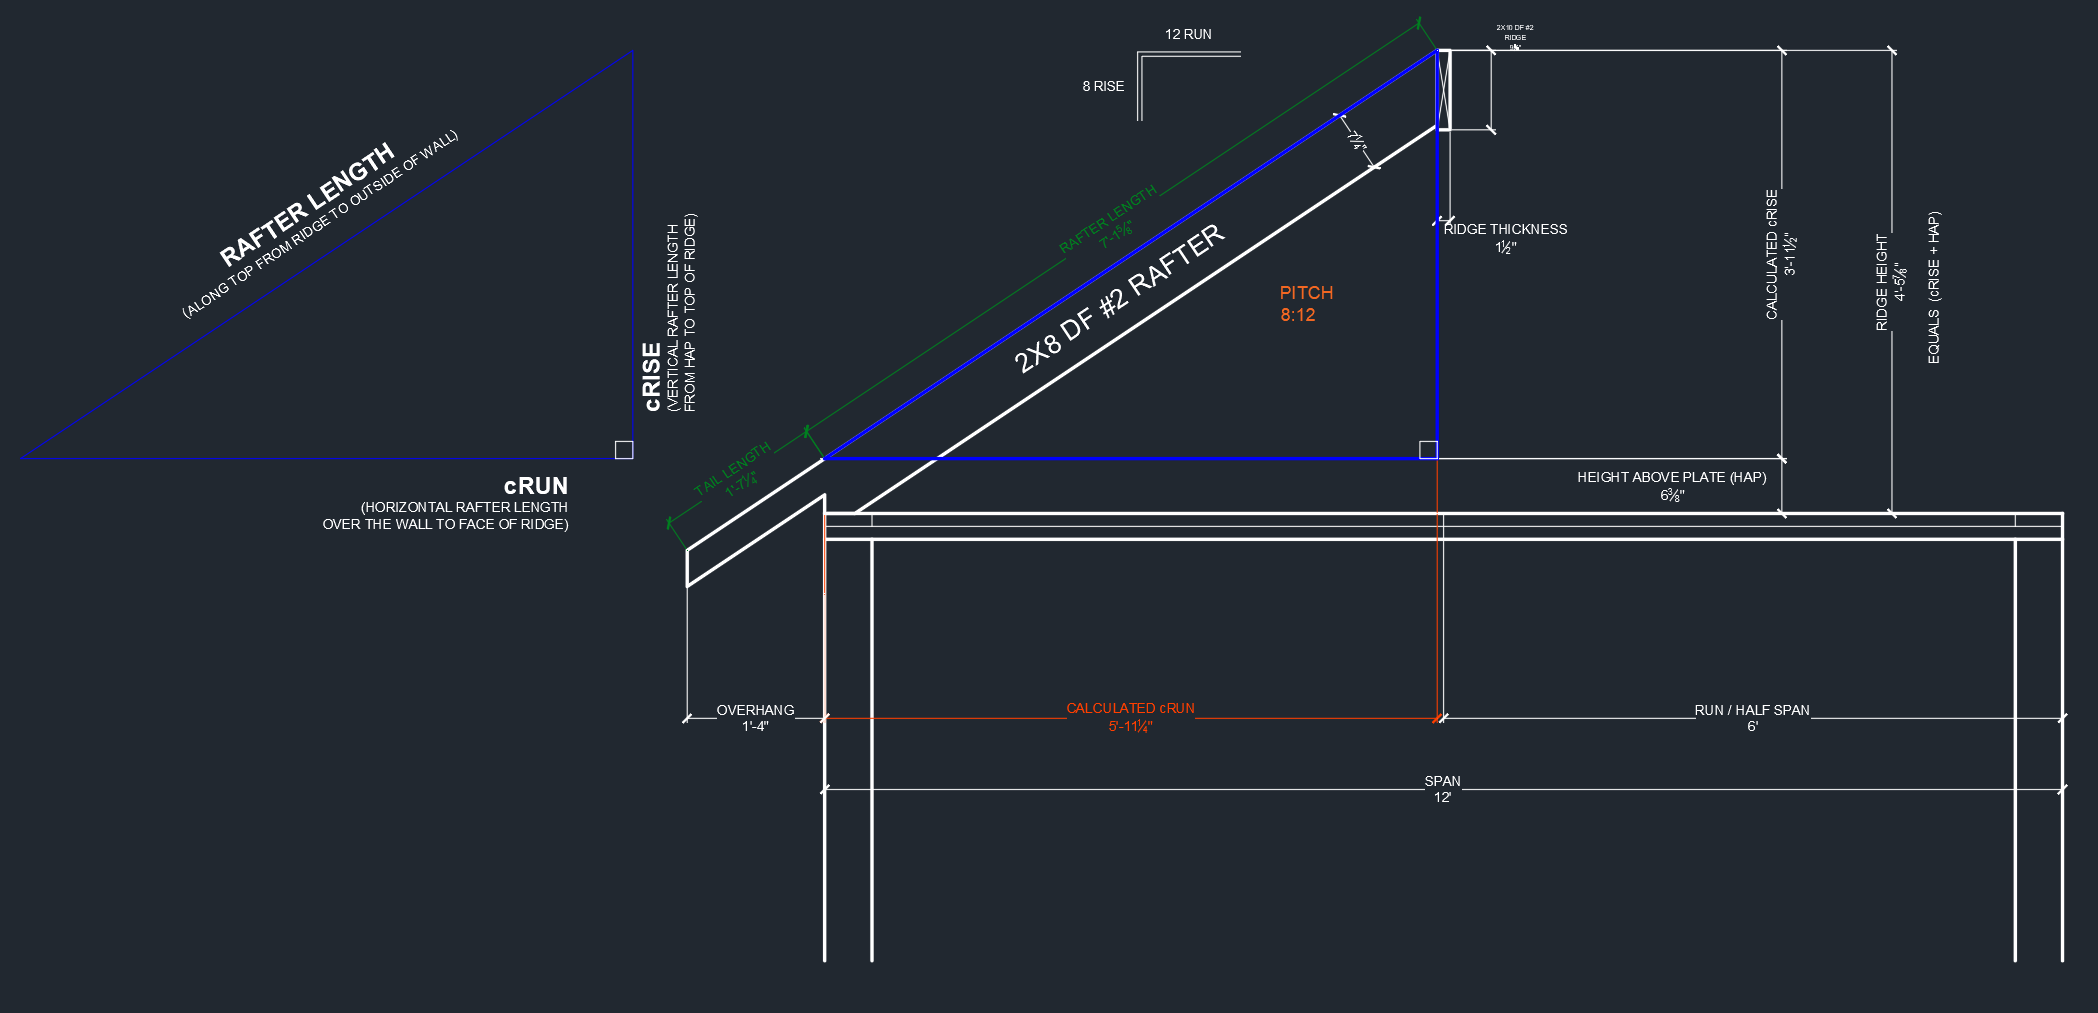 Calculator framing-2019-07-19-15_10_40-autodesk-autocad-lt-2020-roof-diagrams.dwg-.png